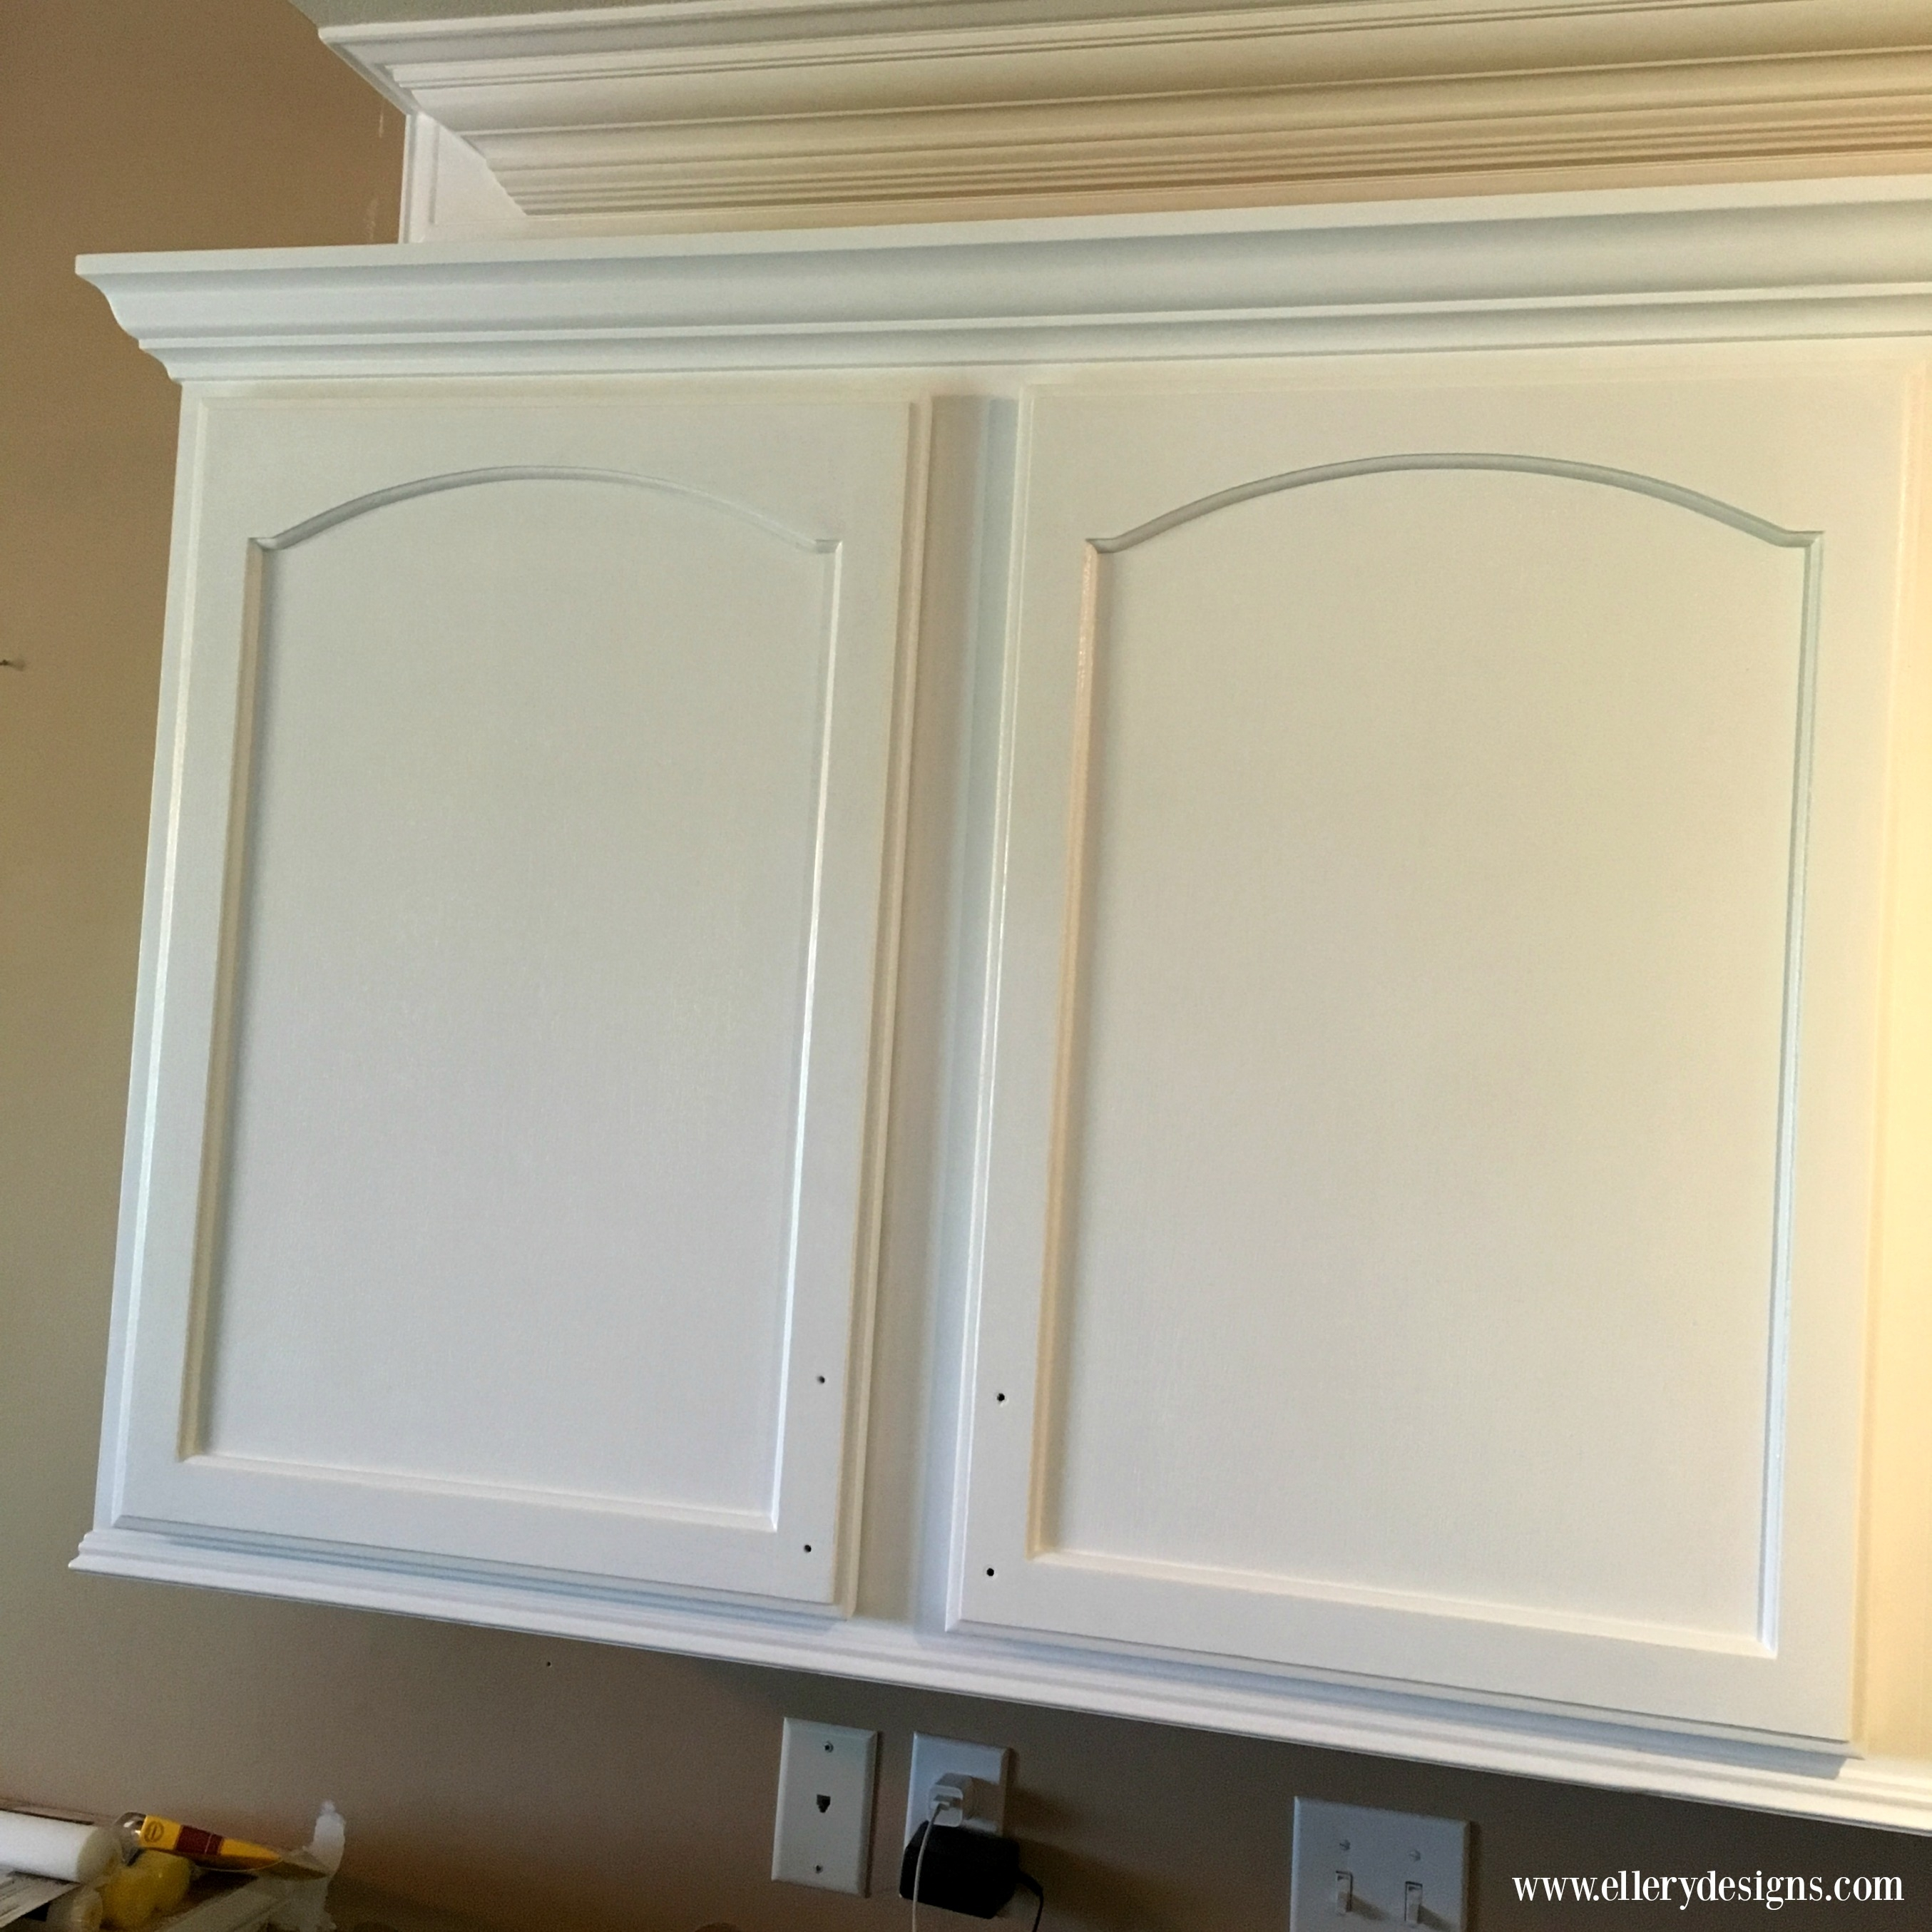 Permalink to Finish Kitchen Cabinets Coat